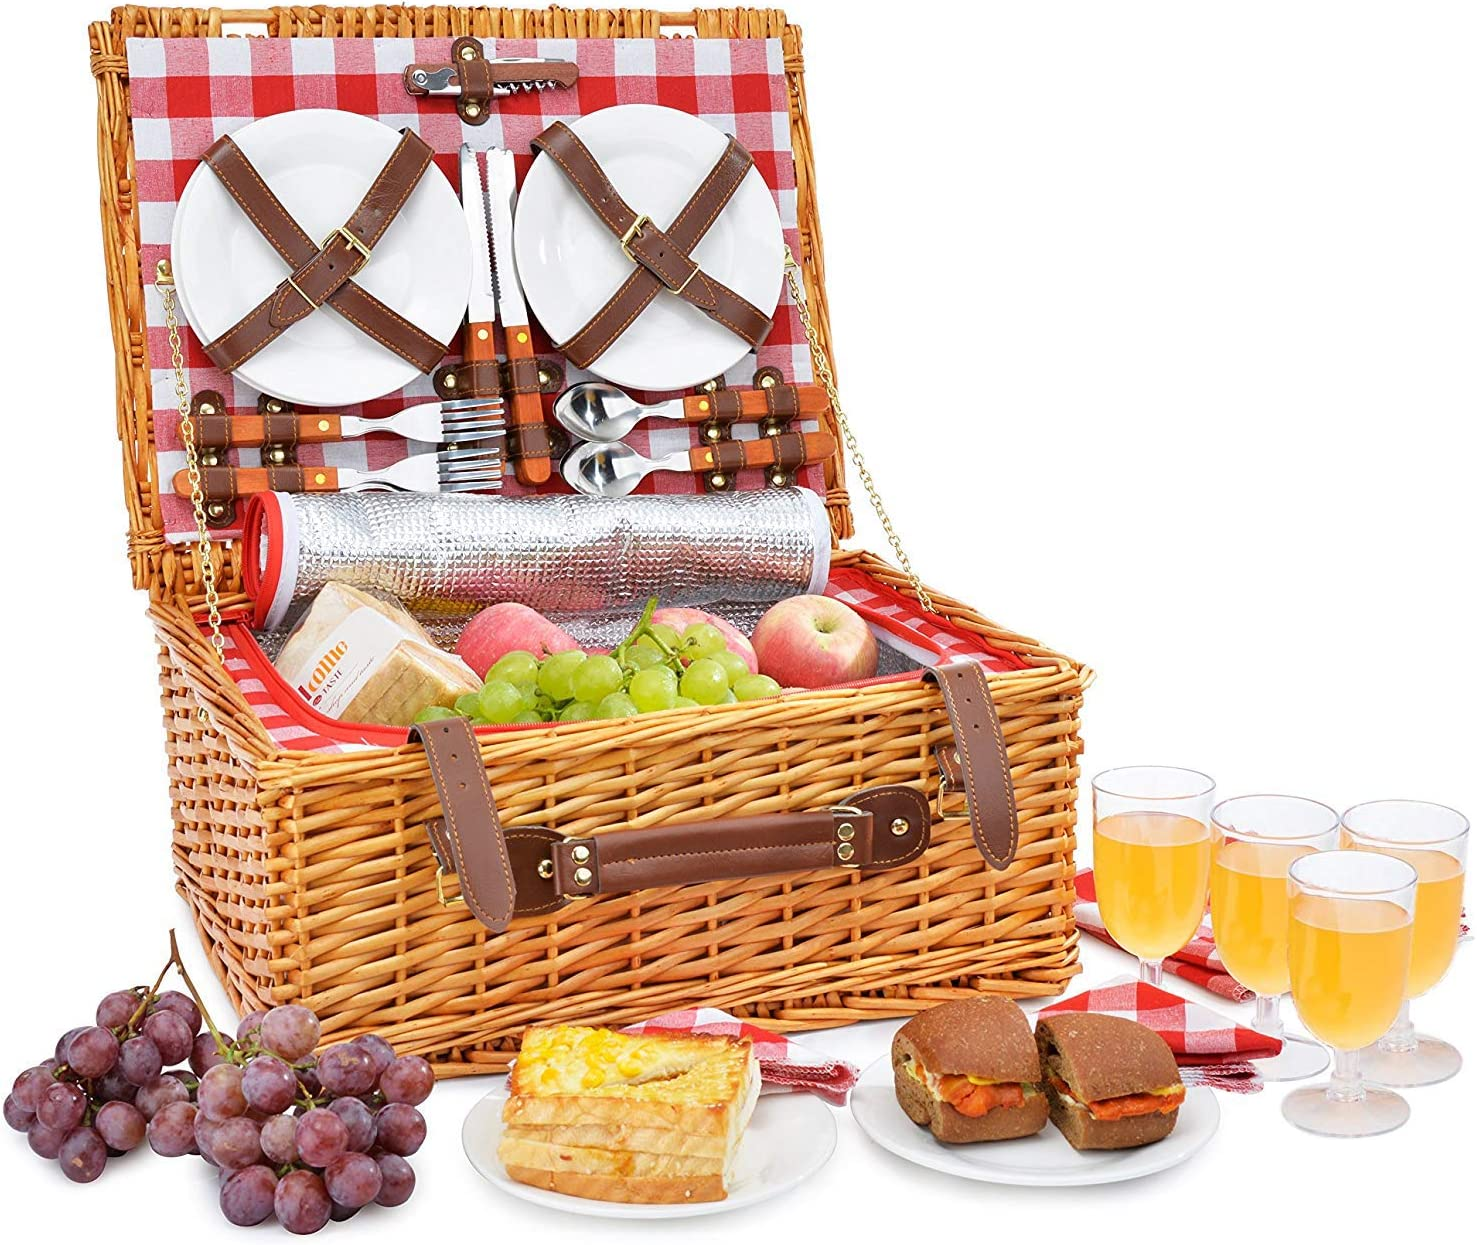 Amazon.com : Picnic Basket Set for 4 Person | Insulated Red Picnic ...